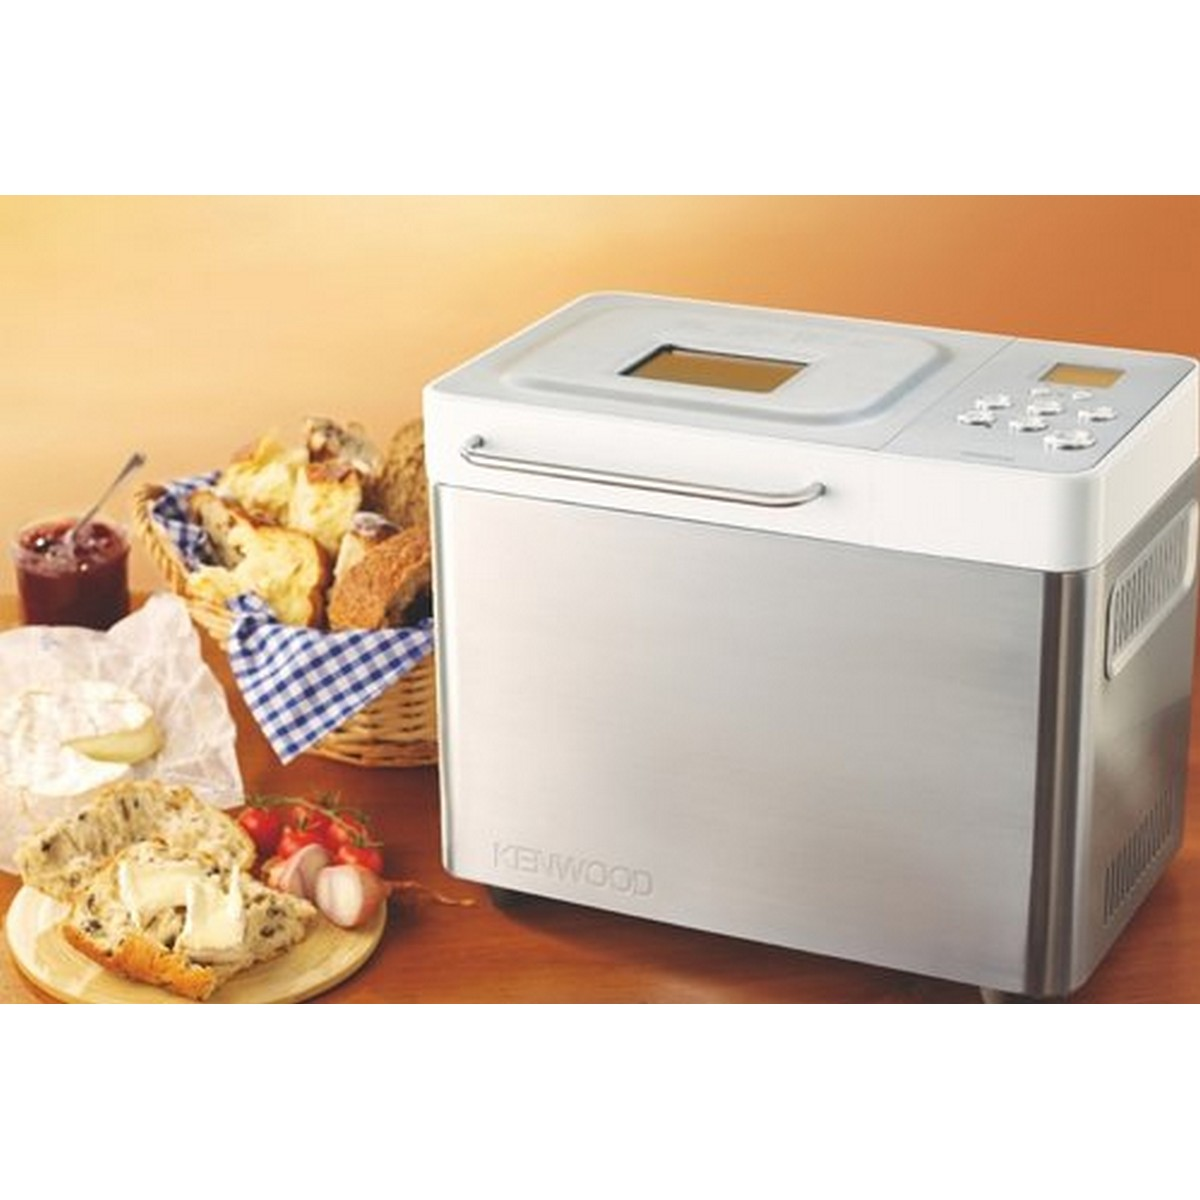 Kenwood Stainless Steel Breadmaker